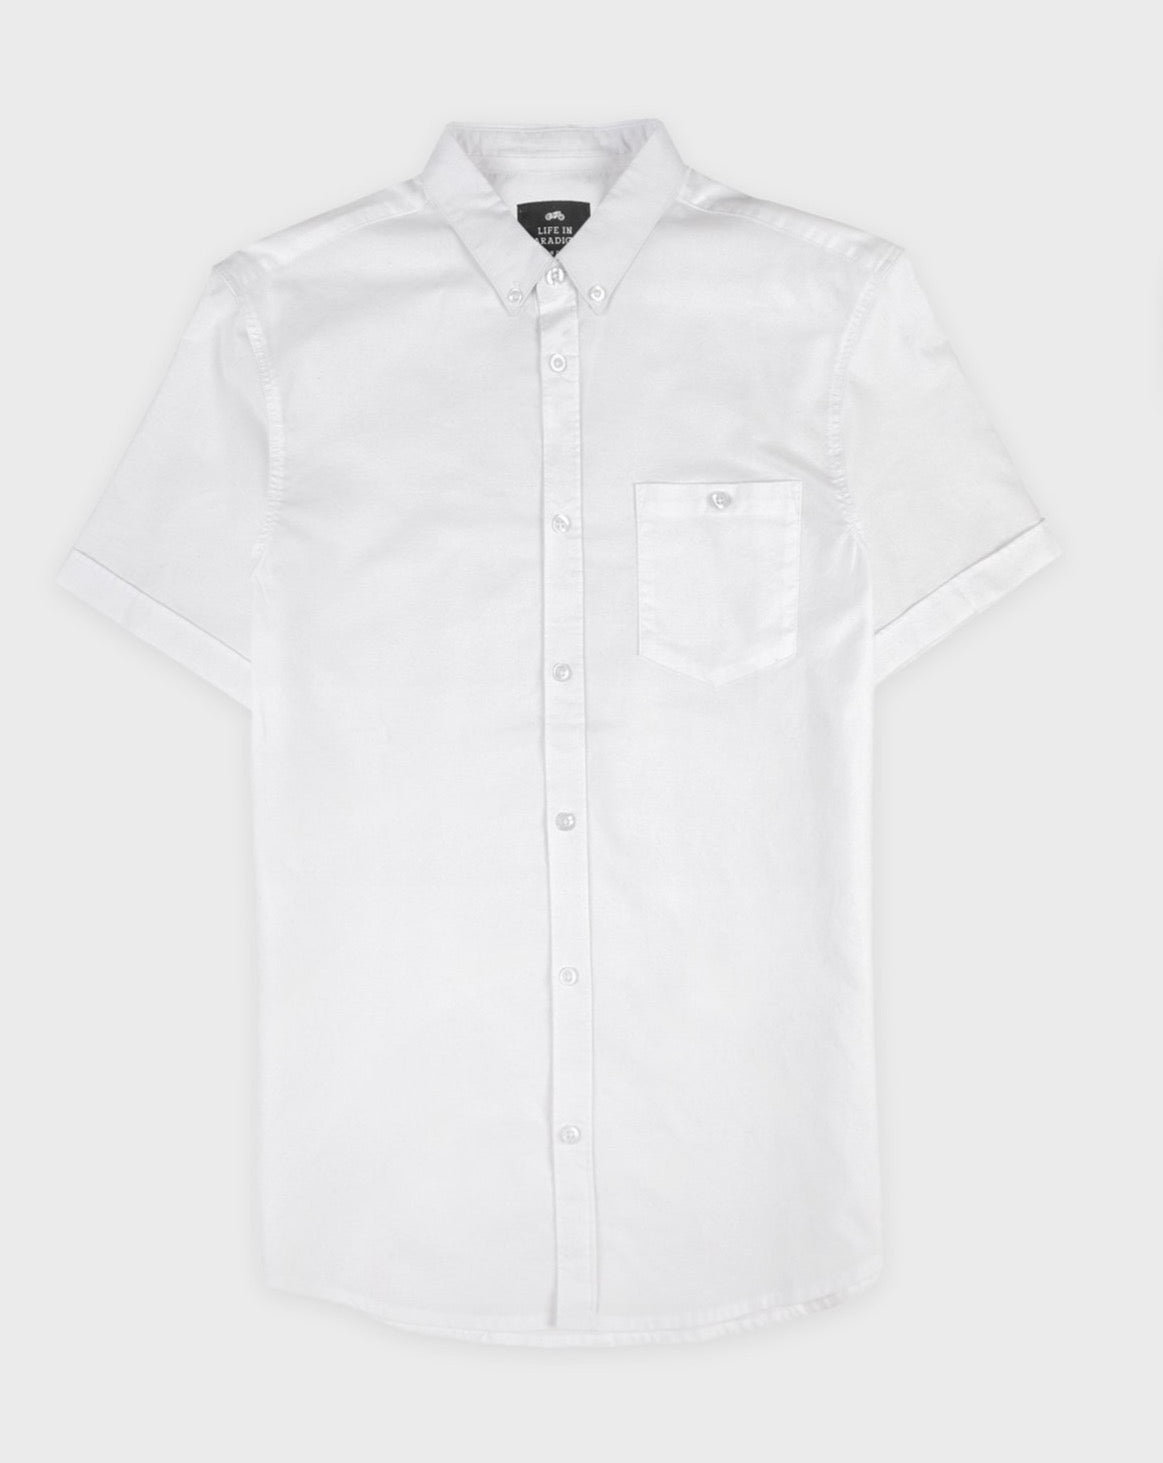 White Short Sleeve Oxford Shirt - Life in Paradigm Menswear London